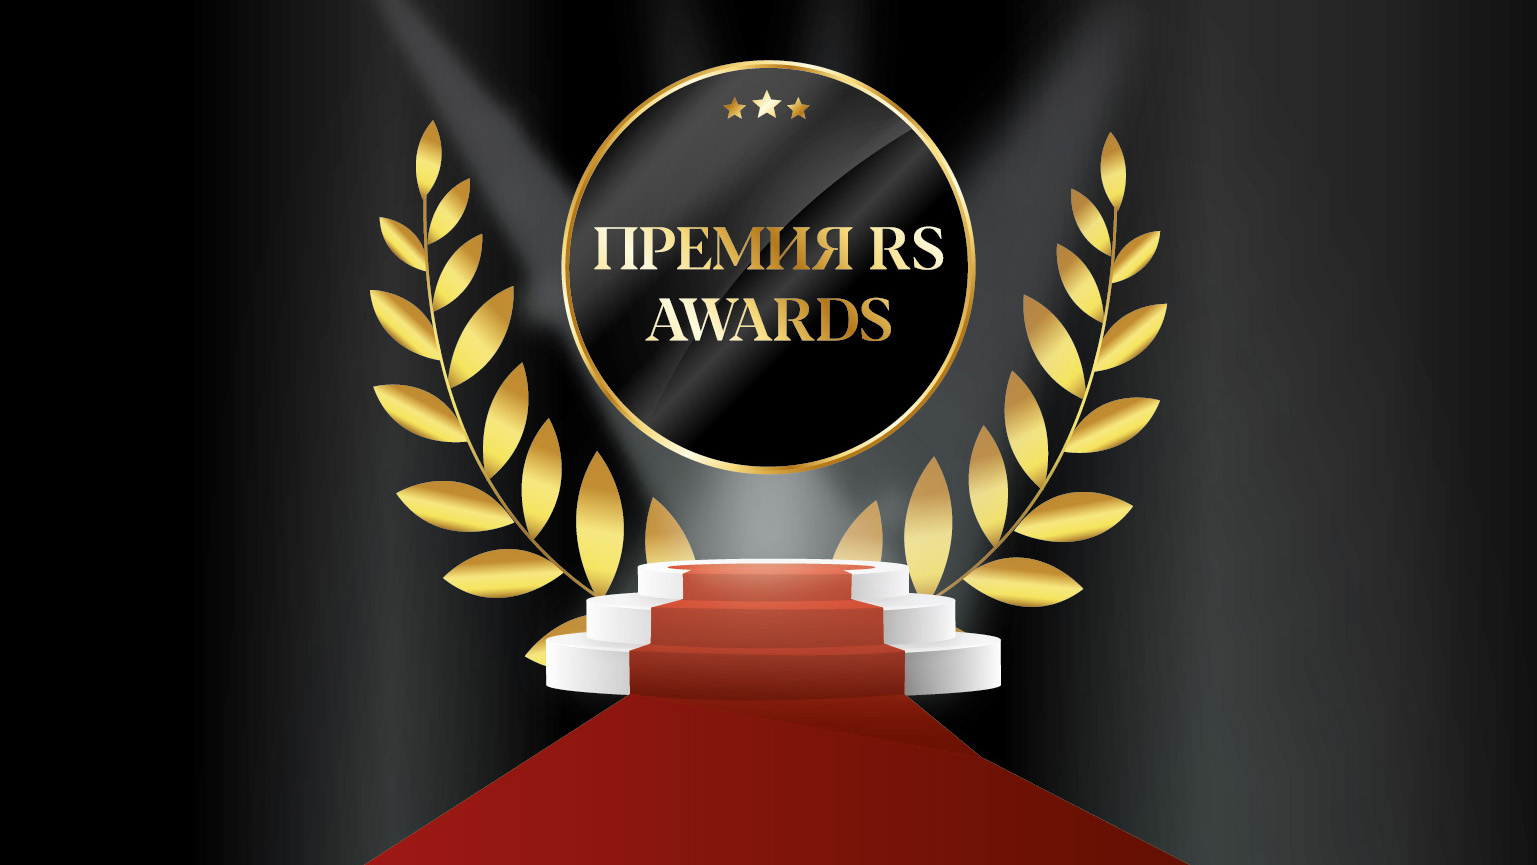 Премия RS Awards